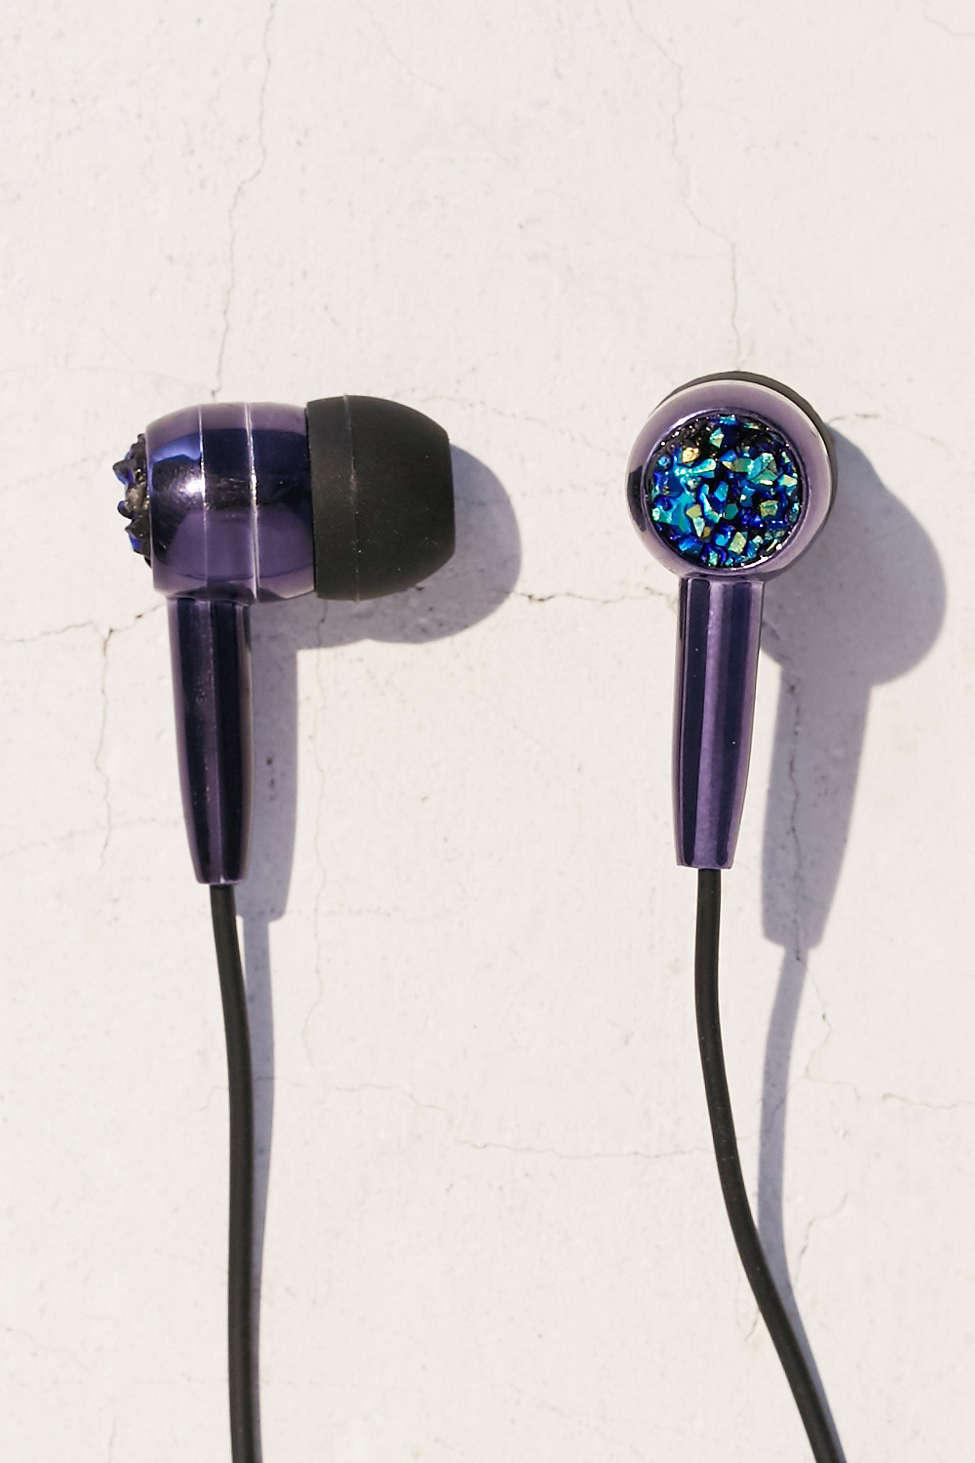 Tech: Skinnydip Pyrite Earbud Headphones, $20